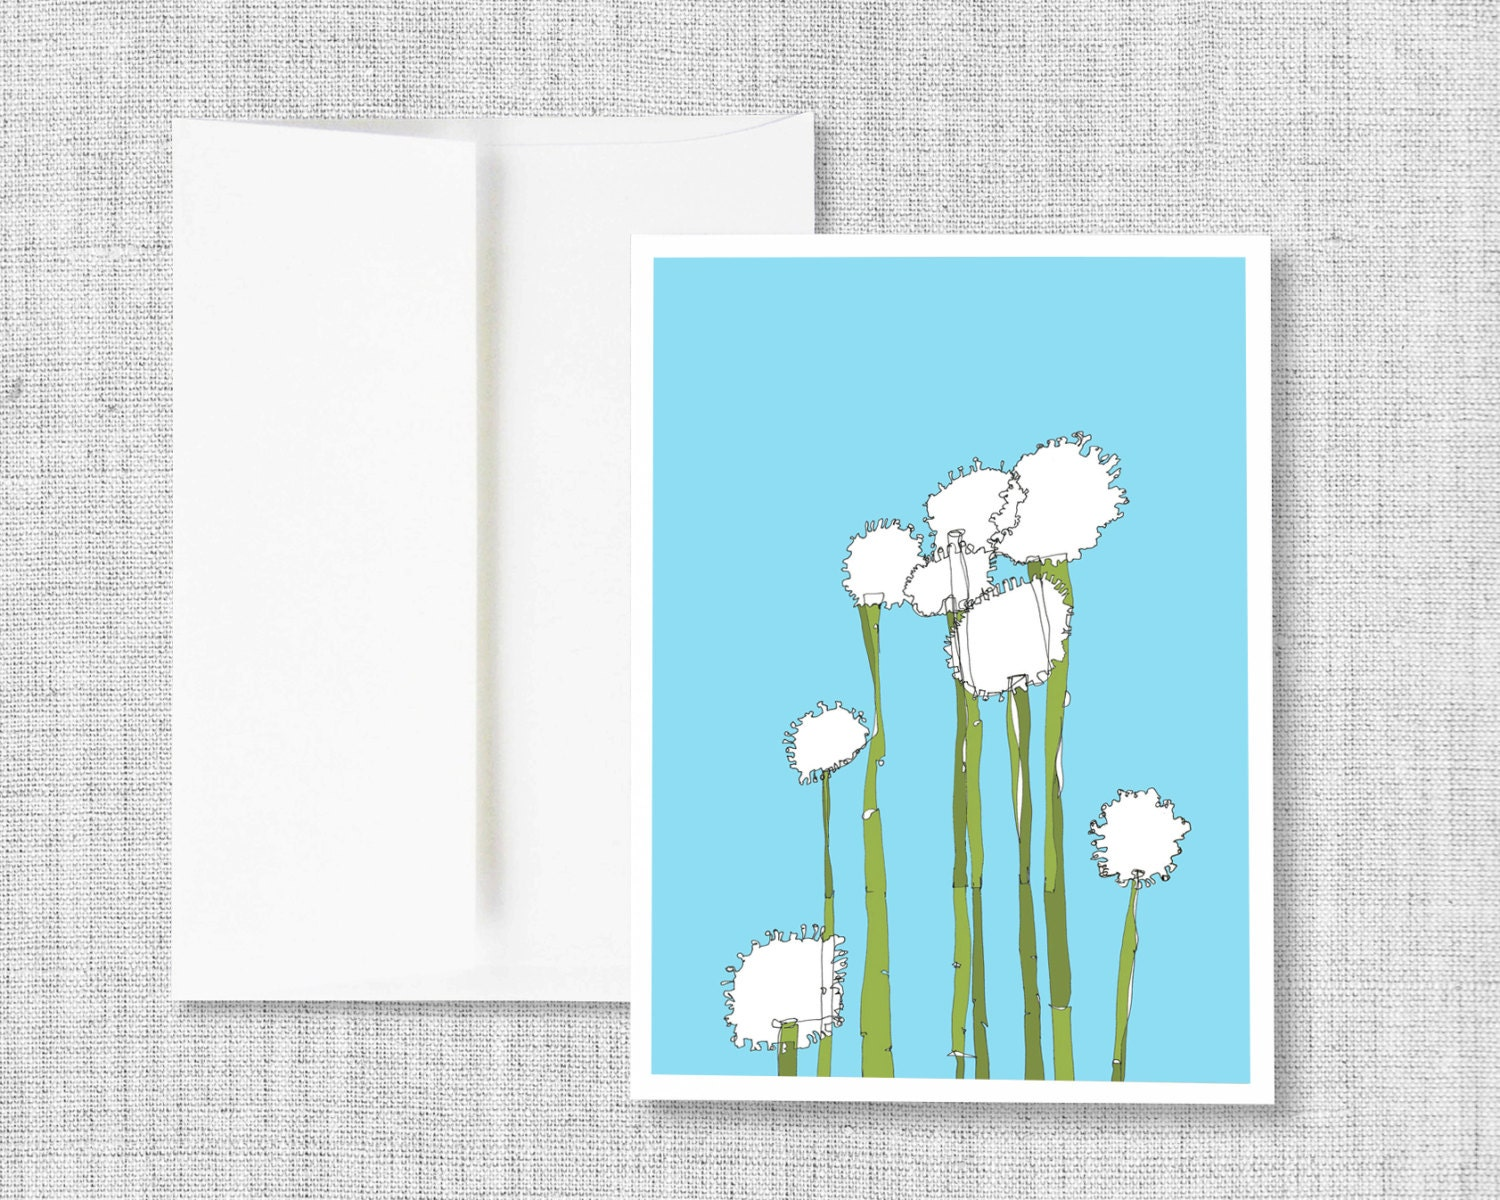 Globetrotters greeting card blank greeting card greeting card globetrotters greeting card blank greeting card greeting card set greeting cards handmade drawing flower drawing blue white green m4hsunfo